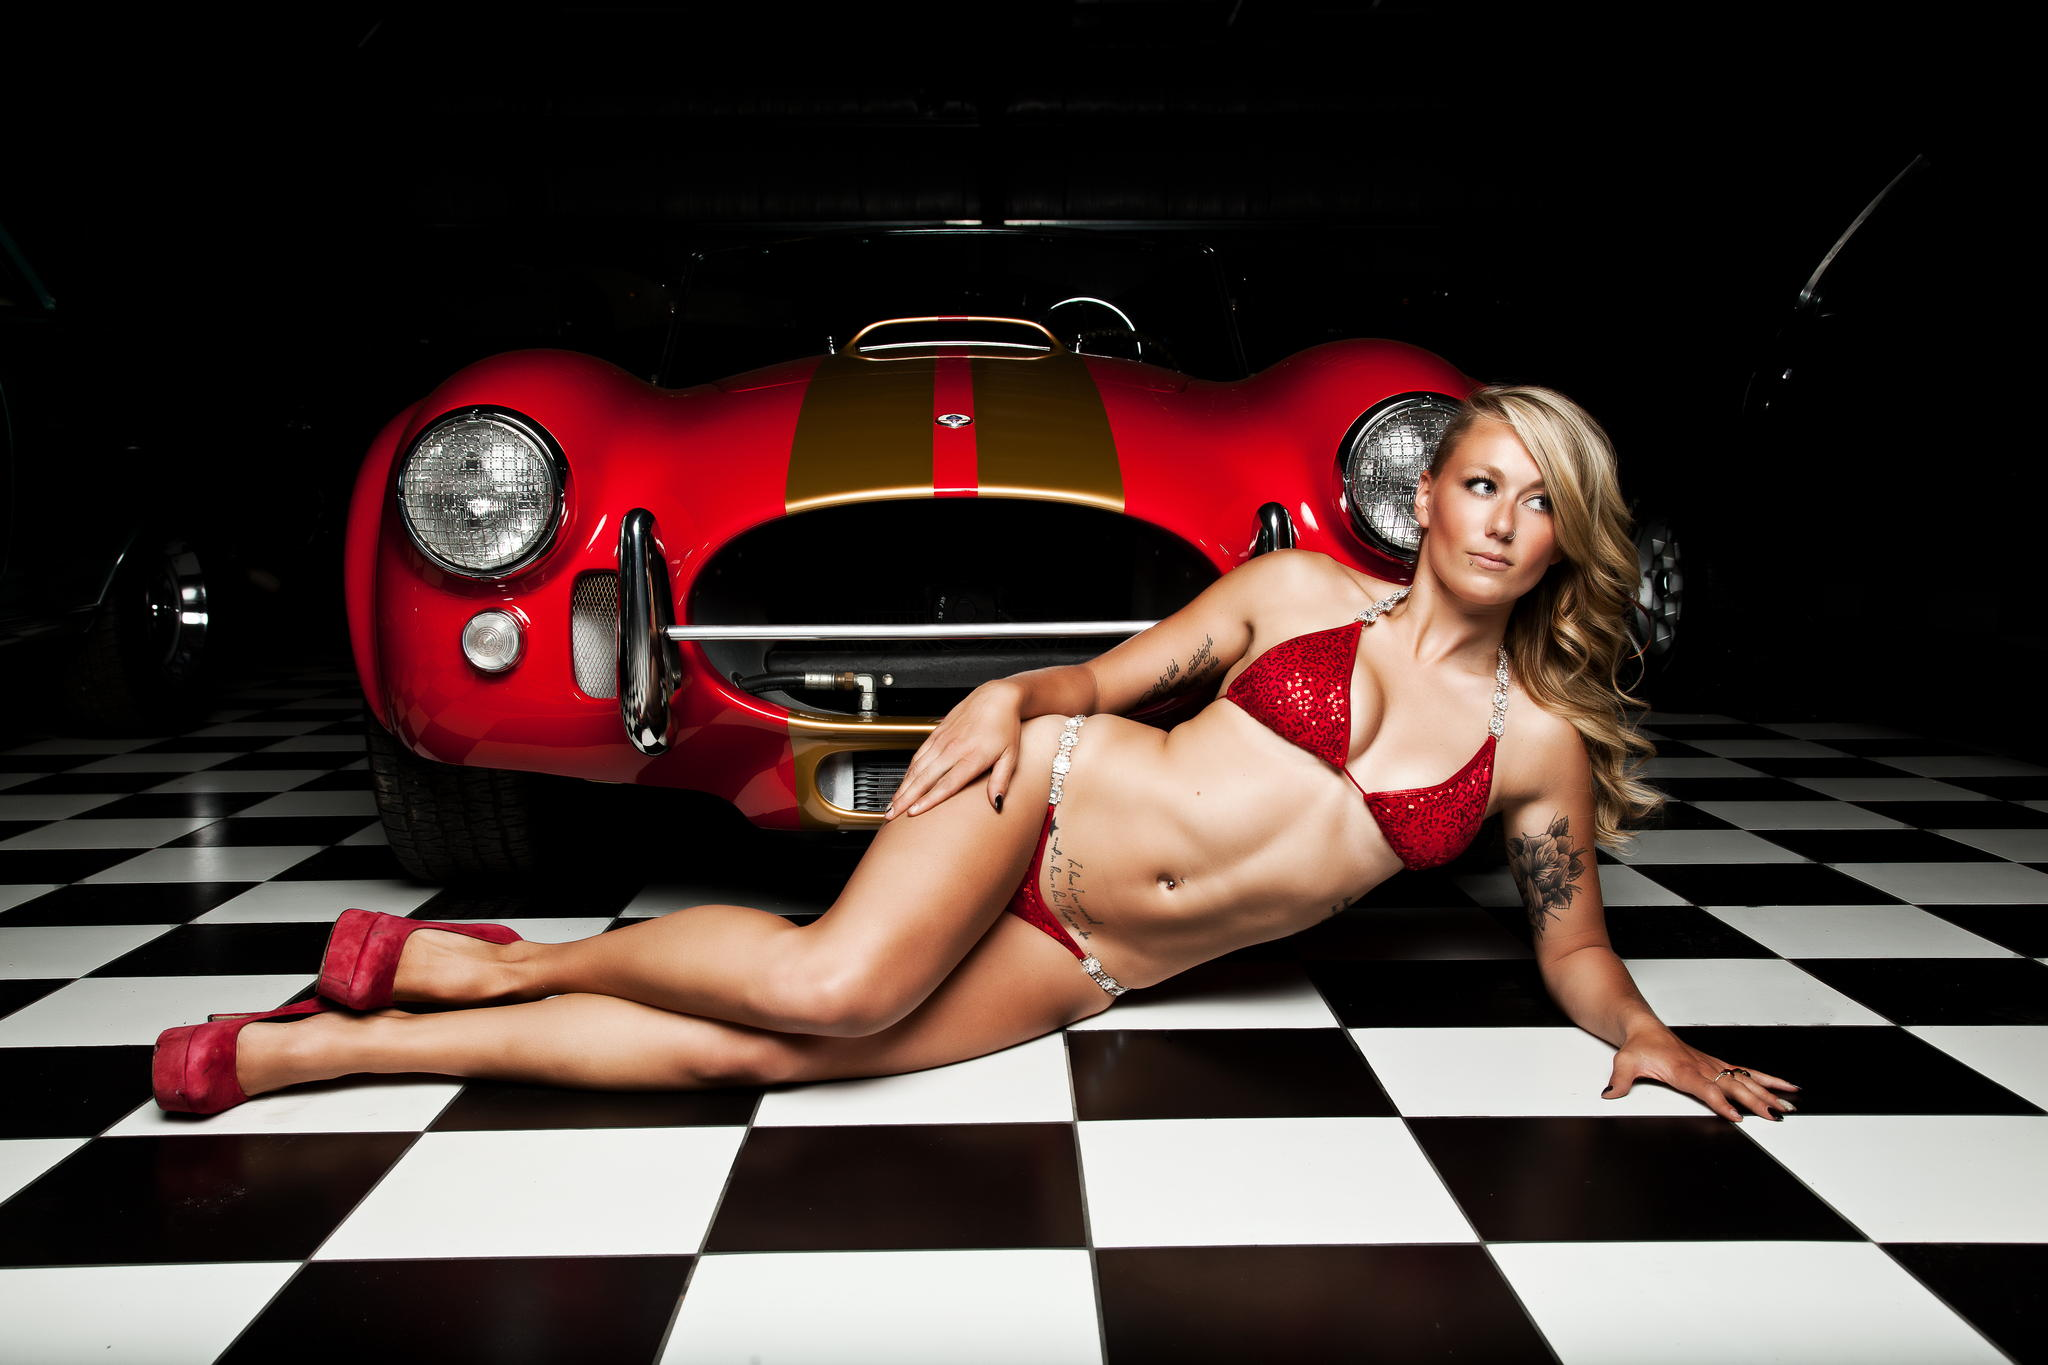 sexy-nude-car-wallpaper-black-tranny-austin